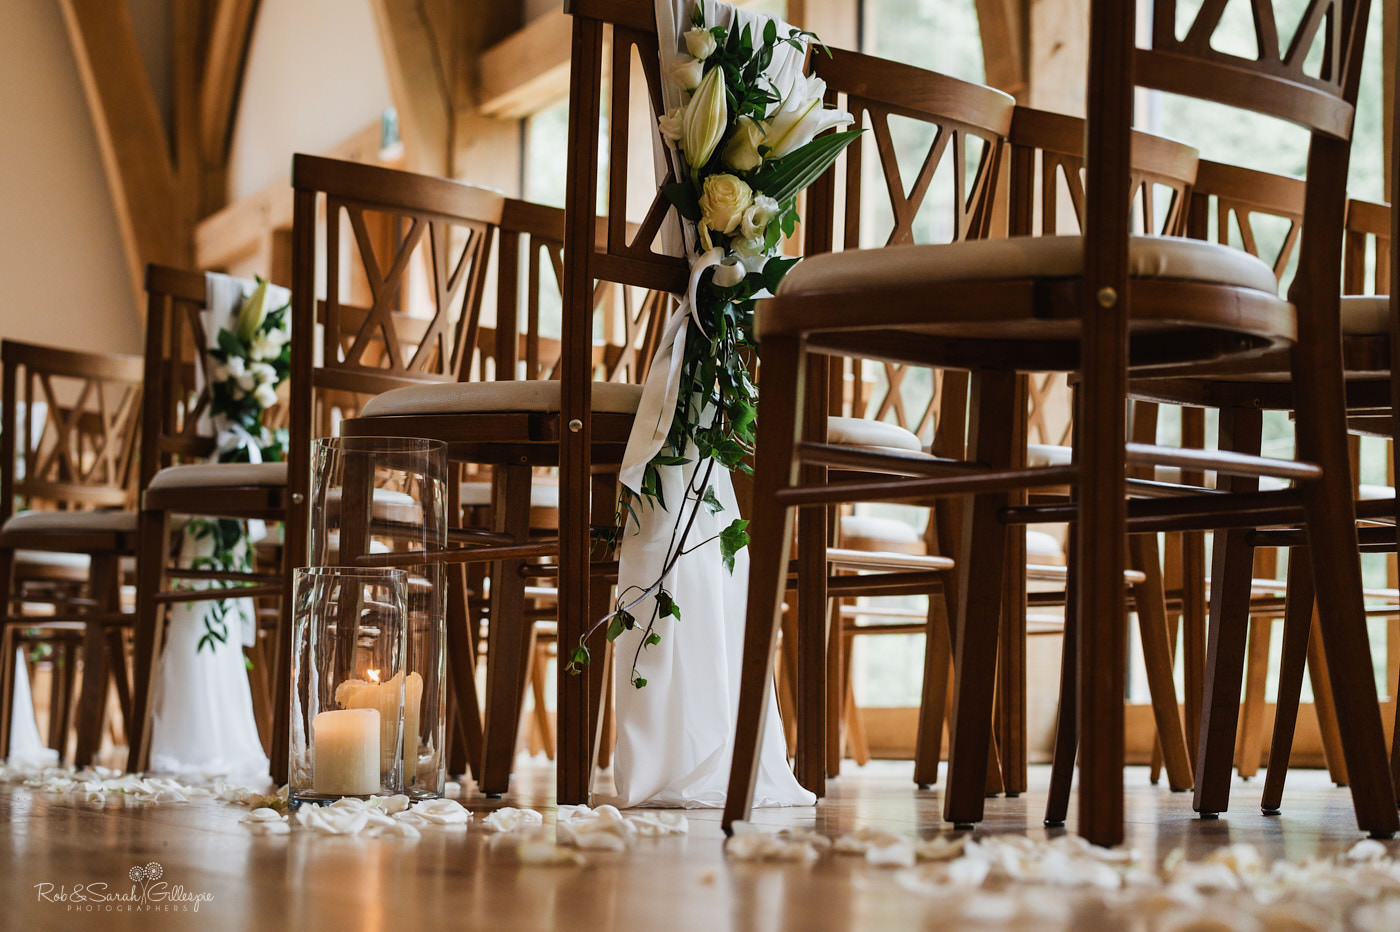 Flowers on chairs at The Mill Barns wedding venue